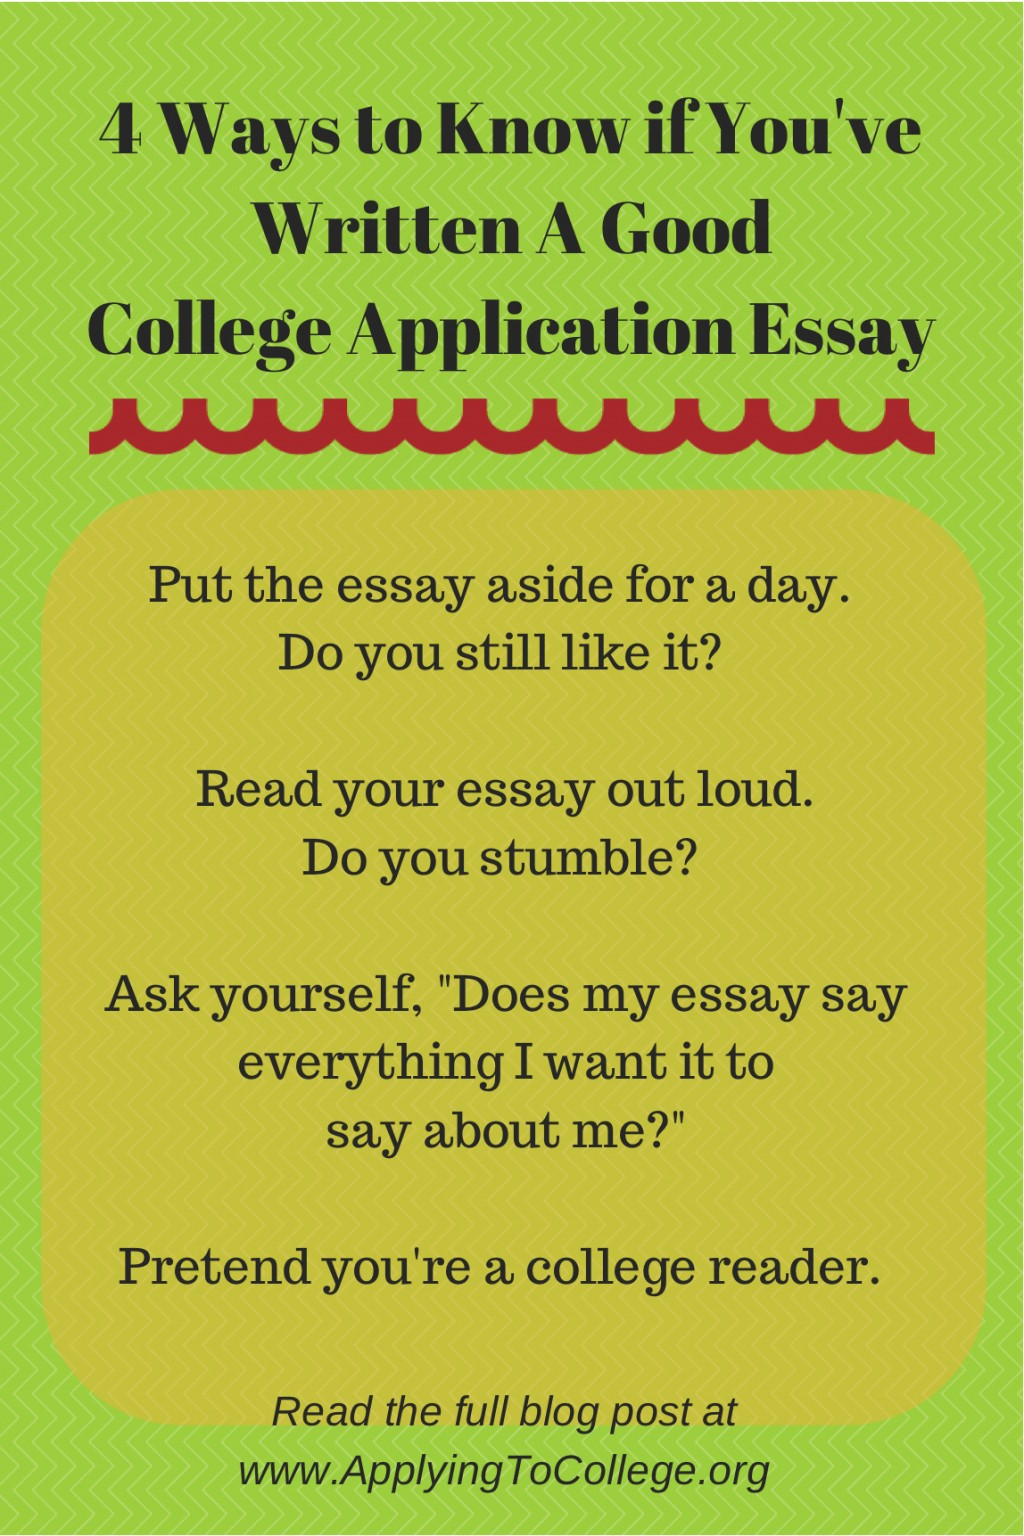 009 4ways To Know If Youve Written Good Read My Essay Unusual Online Reddit For Free Large